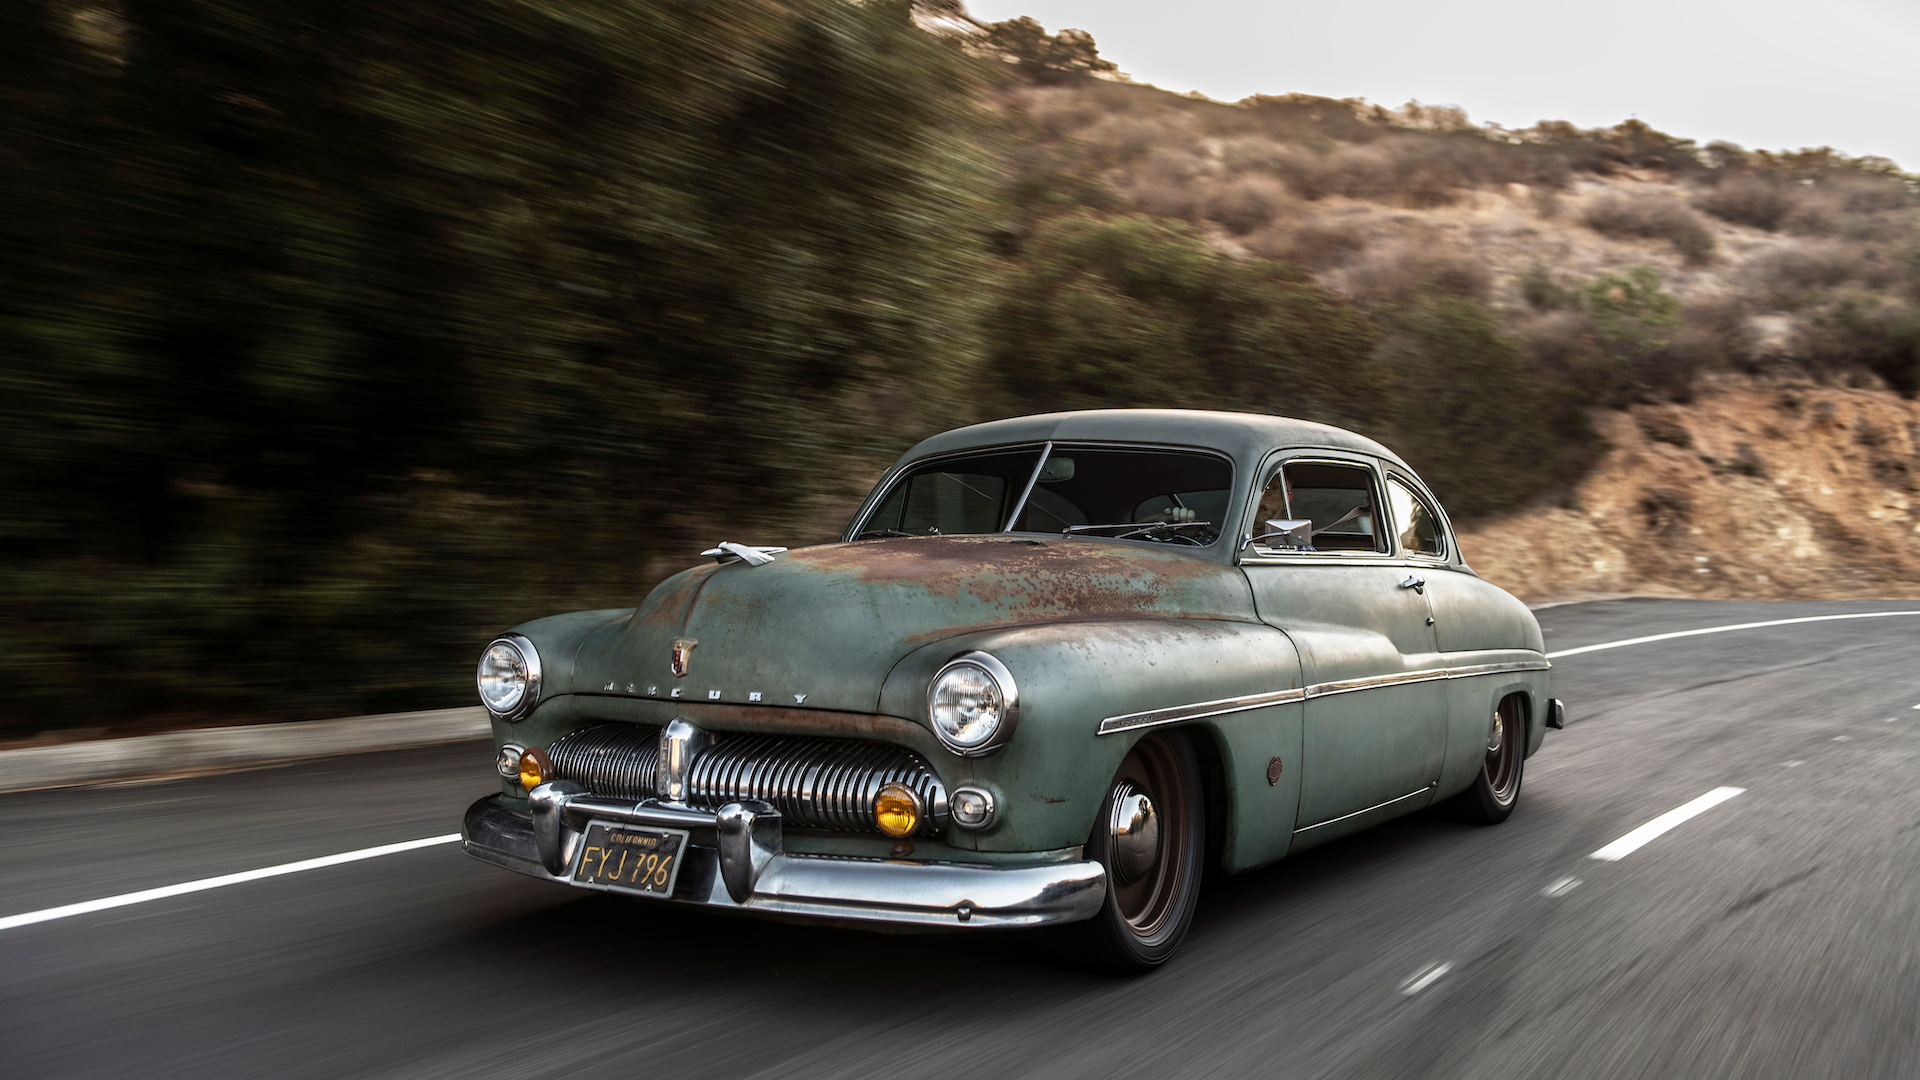 Icon's 1949 Mercury Derelict EV coupe